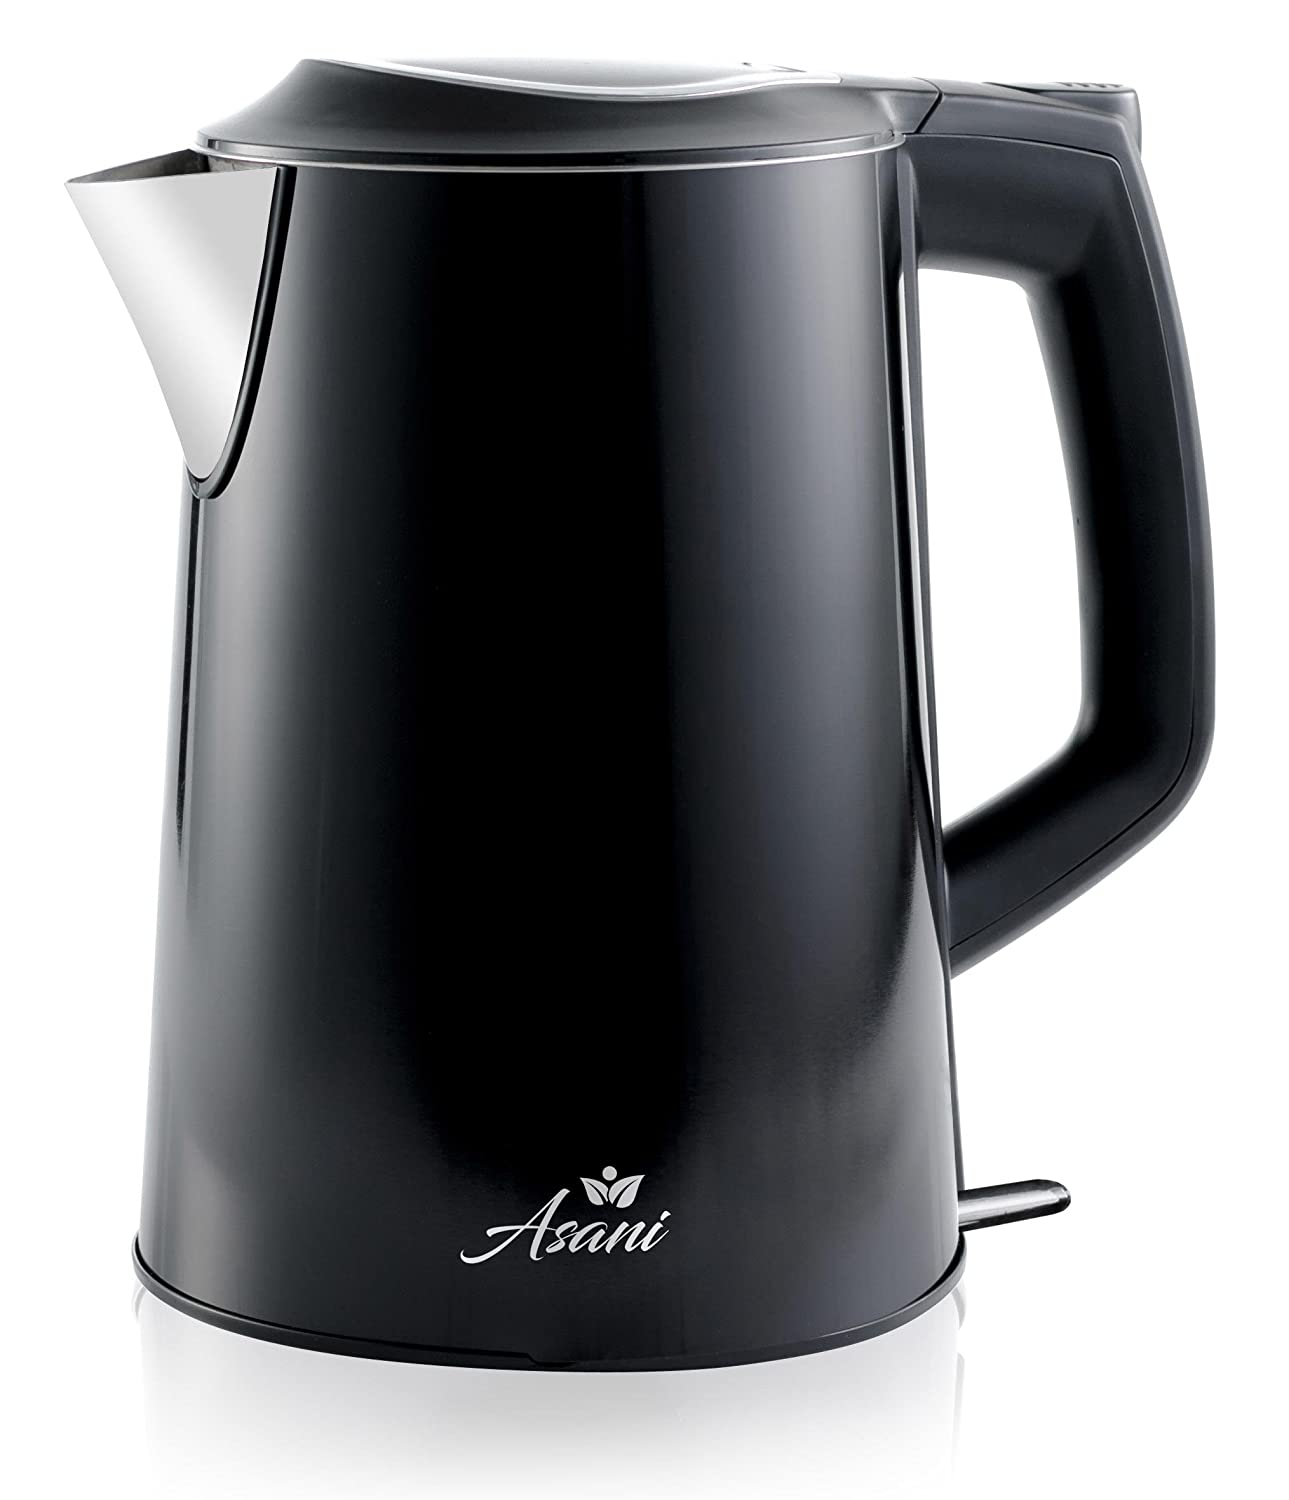 Double Wall Safe Touch Electric Kettle | Stainless Steel with 100% Plastic-Free Interior | Cordless Electronic Hot Water Heater Pot with Cool Touch, Boil Dry Protection & More(1.9Qrt/1.8L)(Black2)